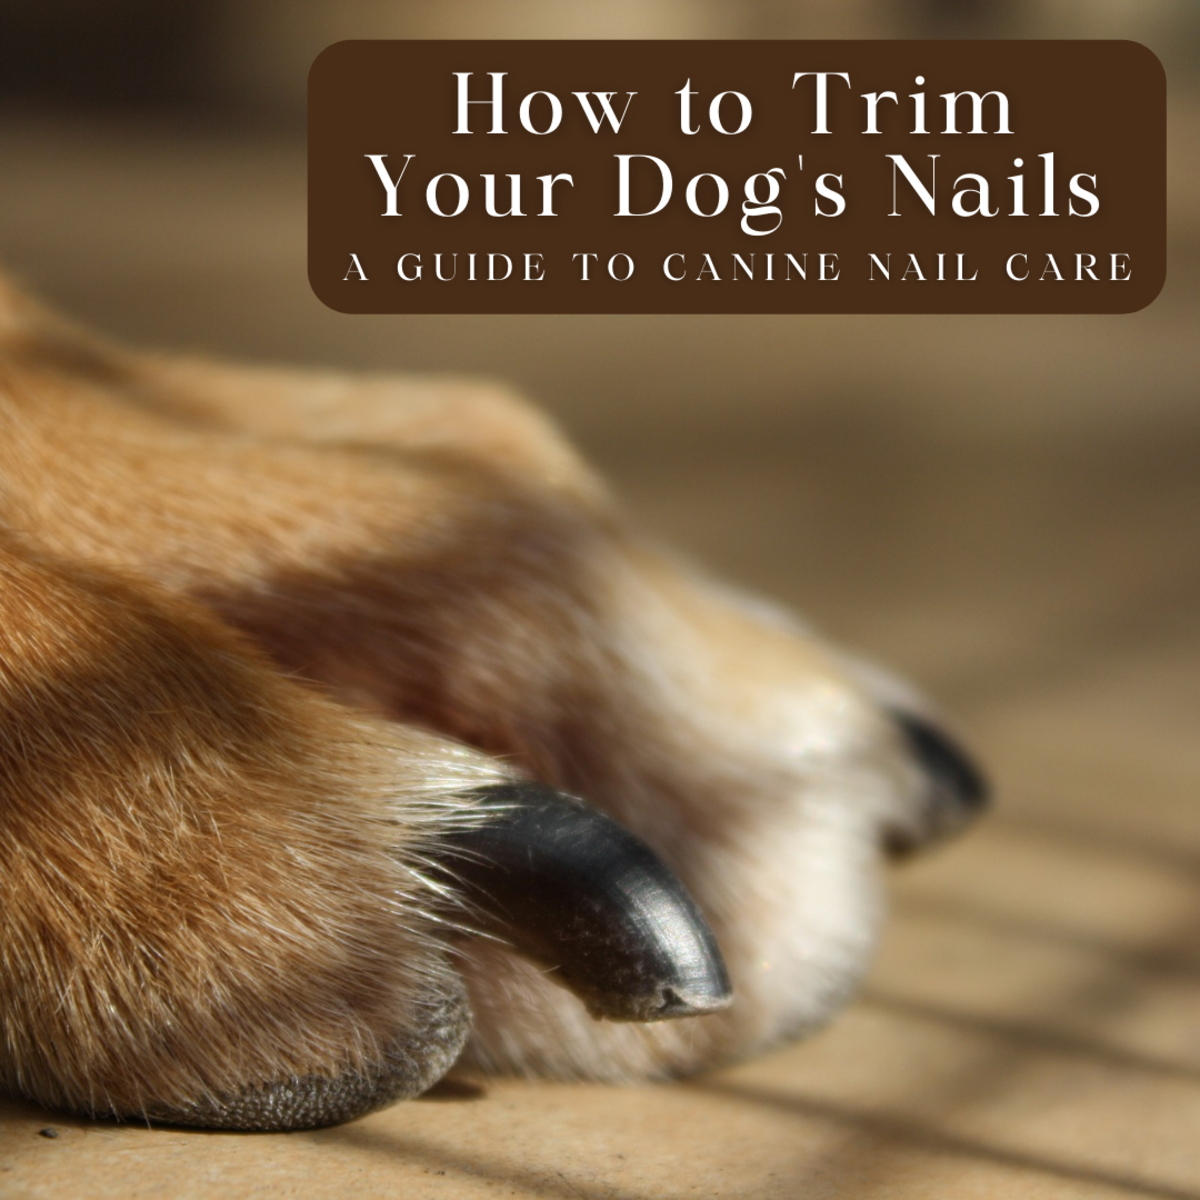 This guide will provide you with all the information you need to properly and safely trim your dog's nails.